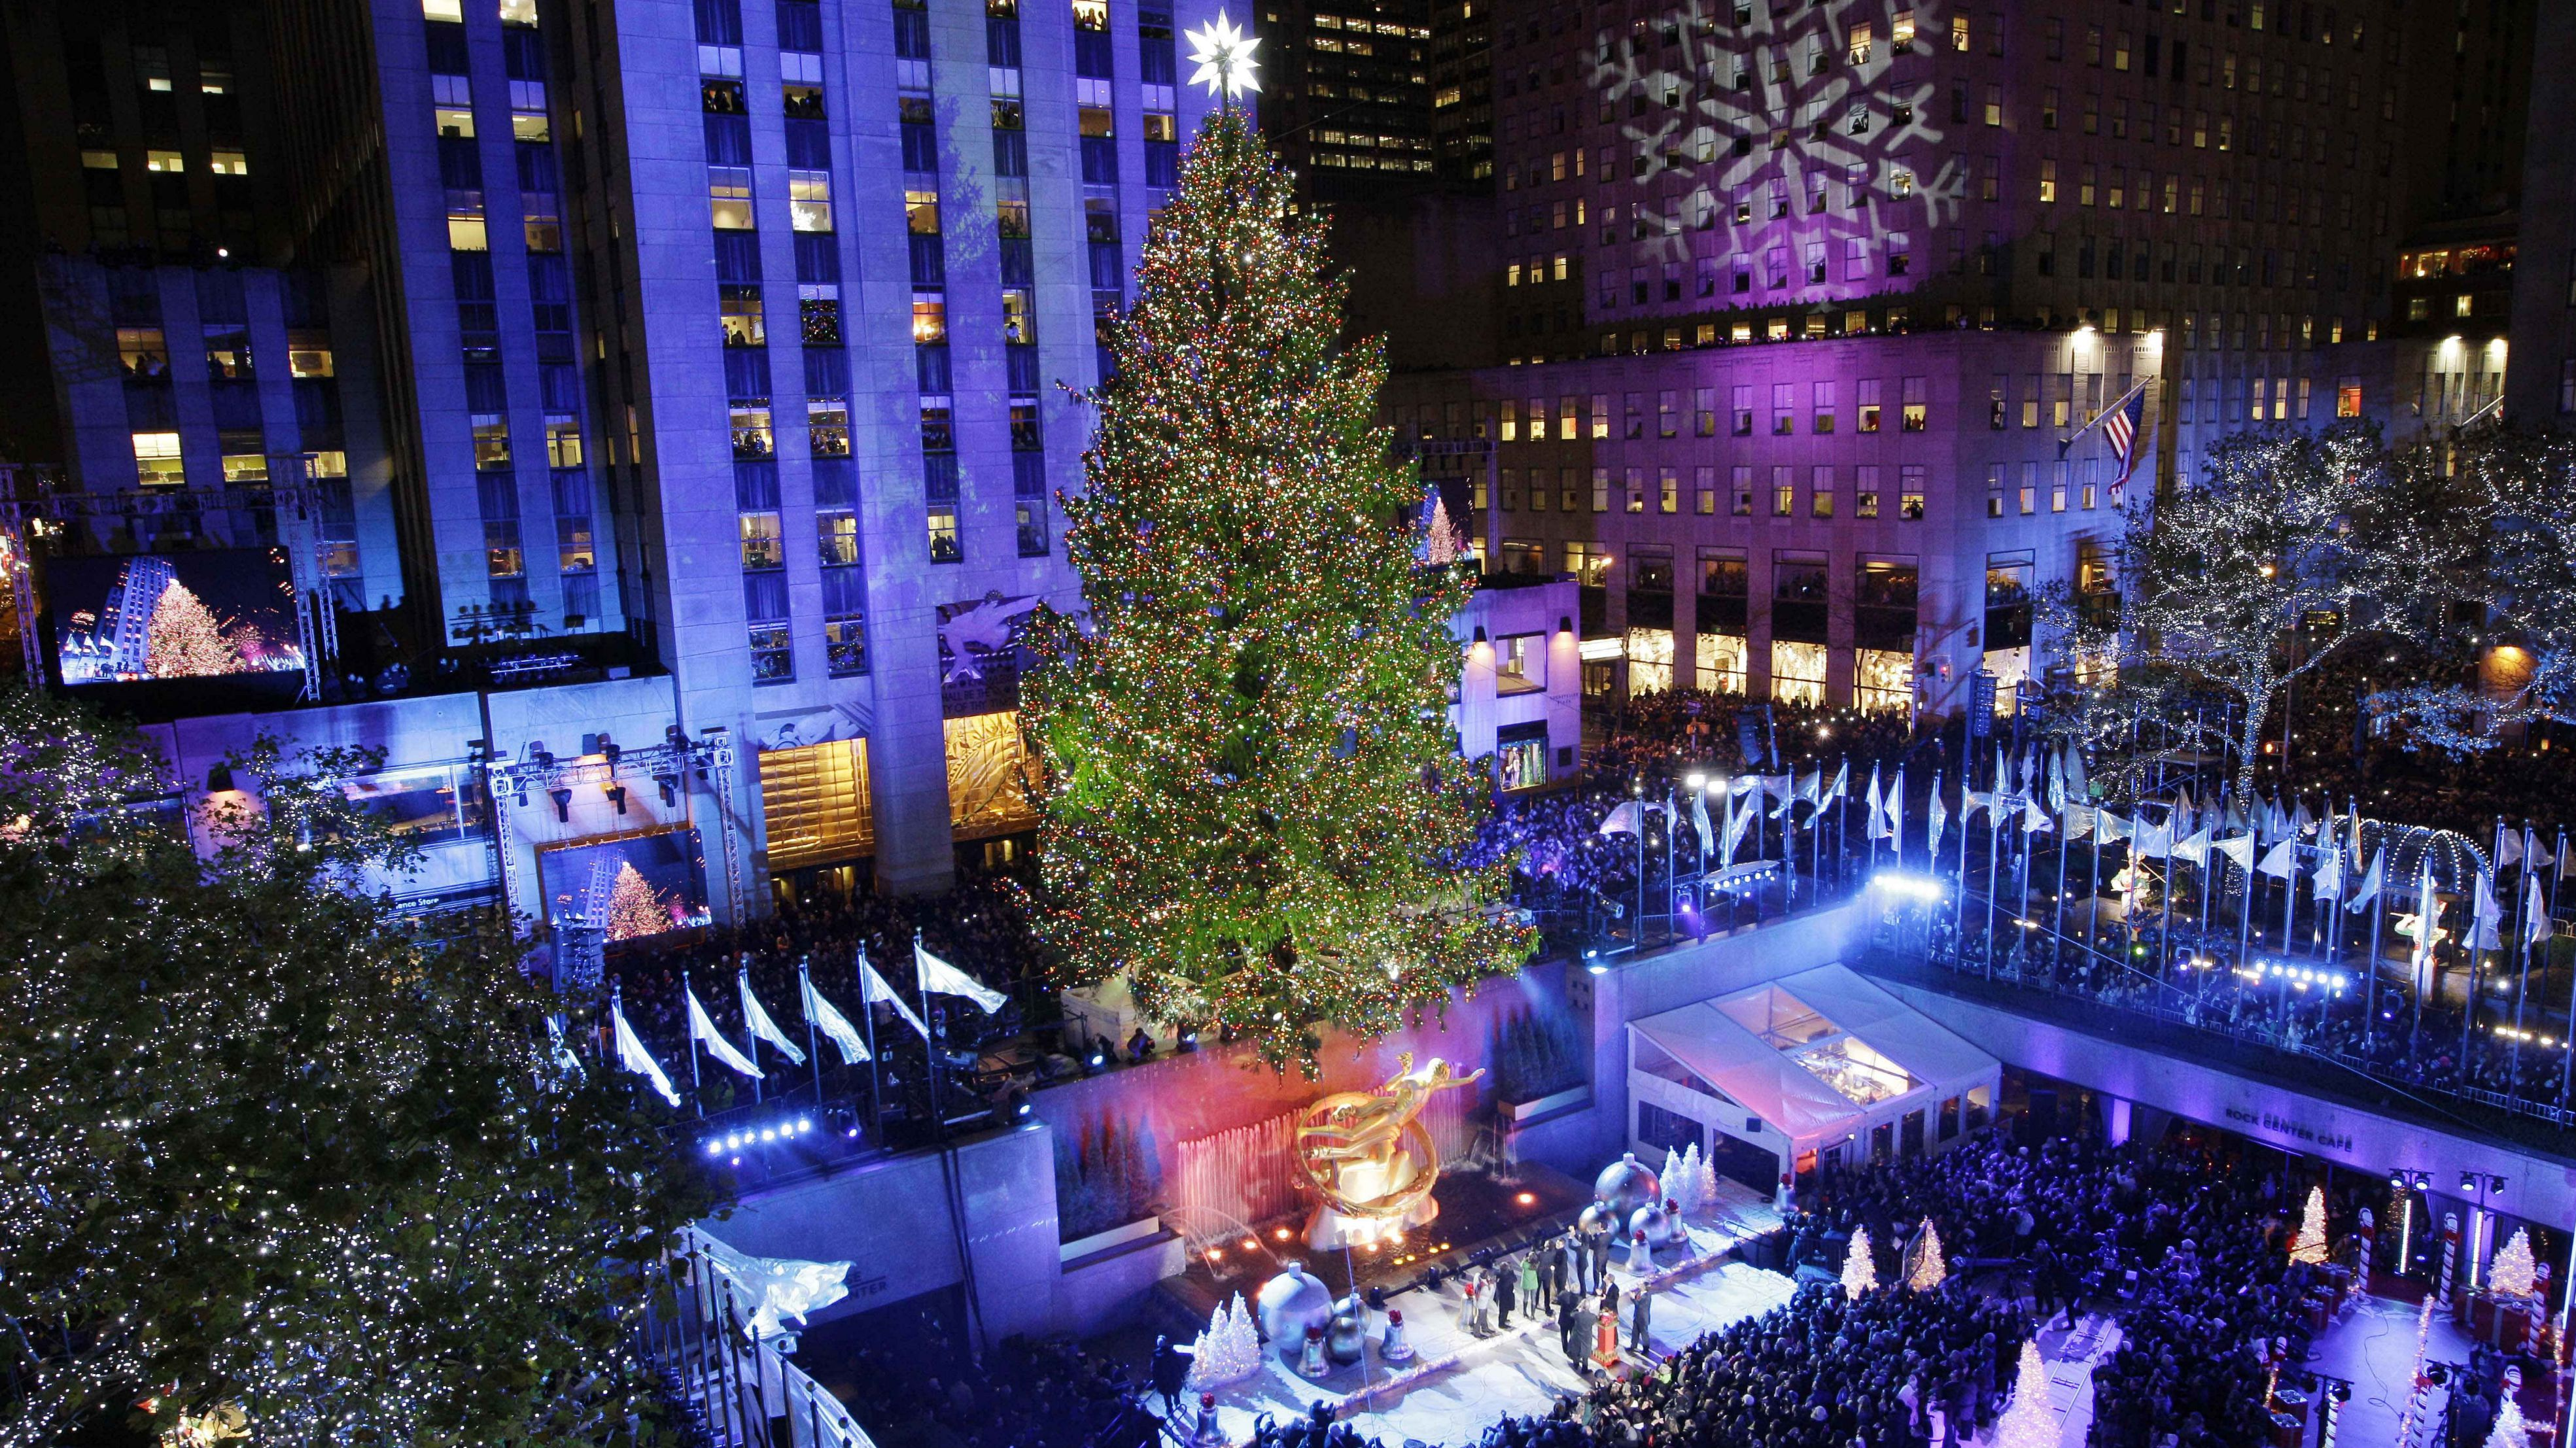 The Rockefeller Center Christmas Tree Is Lit During The 80th Annual Tree  Lighting Ceremony At Rockefeller